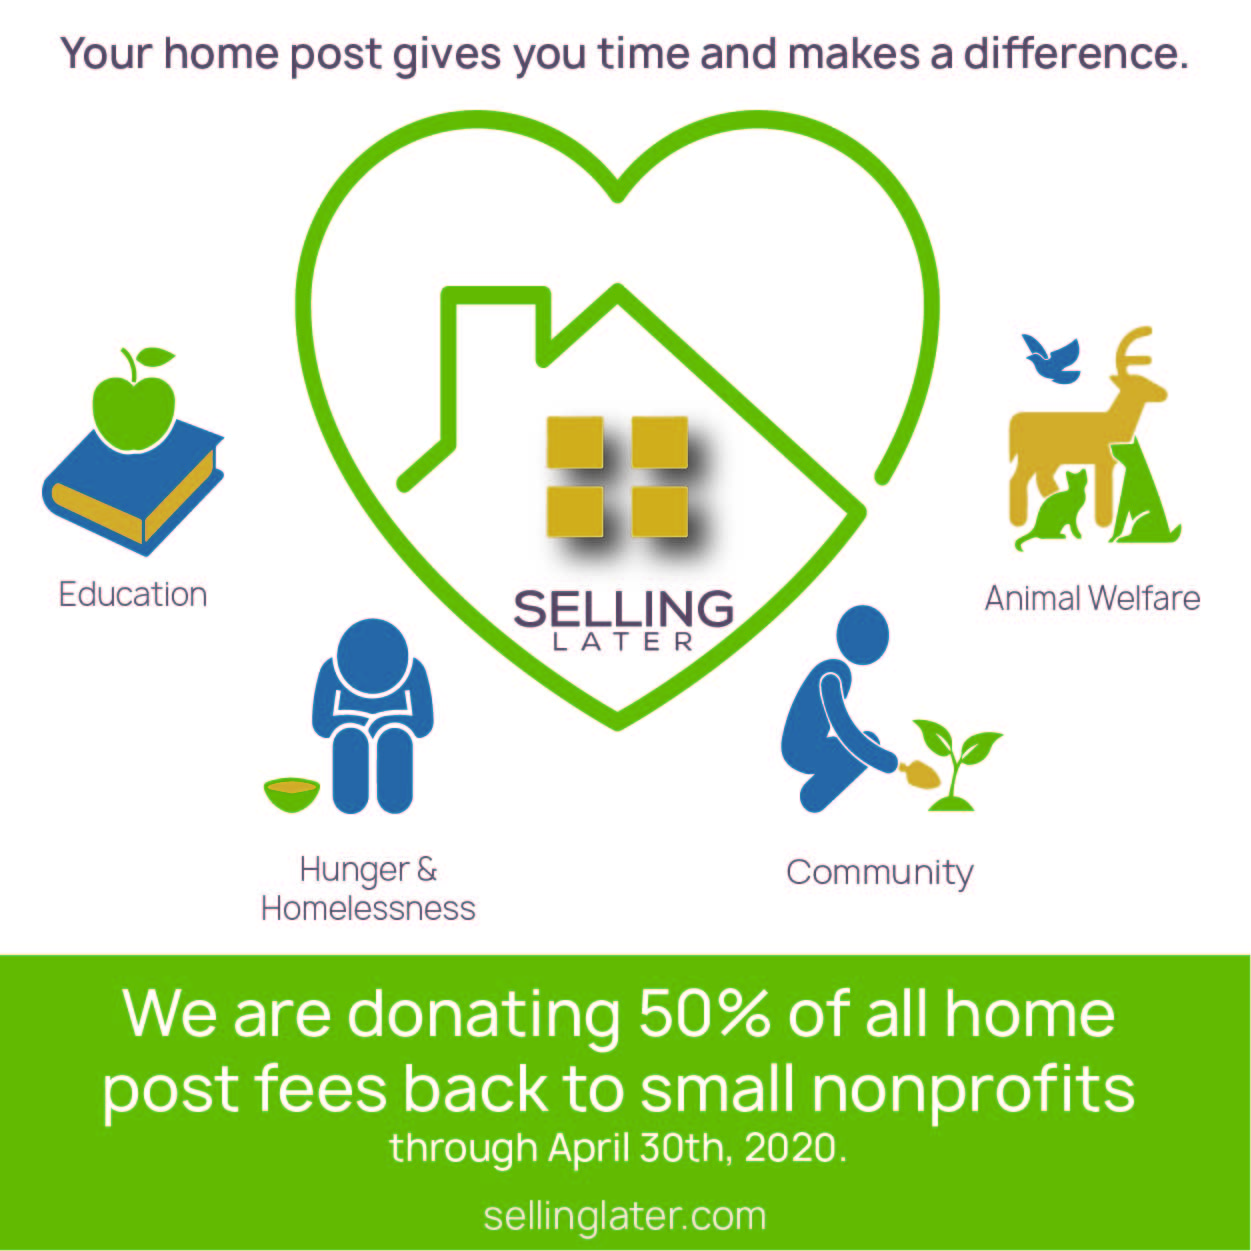 We are donating 50% back to small nonprofits